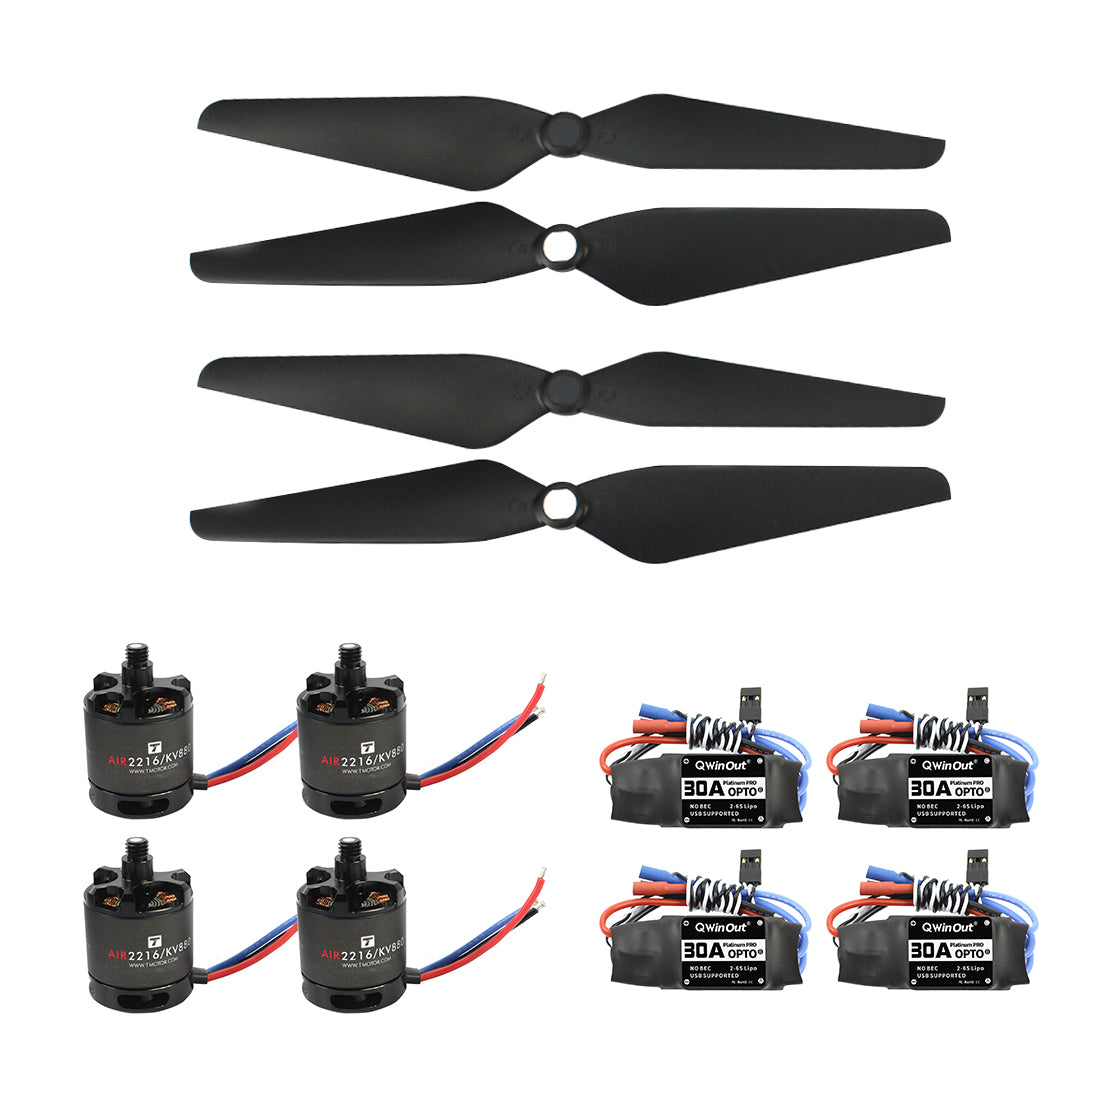 T-Motor Air Gear 450 Power Air2216+T1045 Combo AIR2216 880KV 4 Motor+4 1045 Propellers + 30A ESC for DIY RC FPV Drone Quadcopter